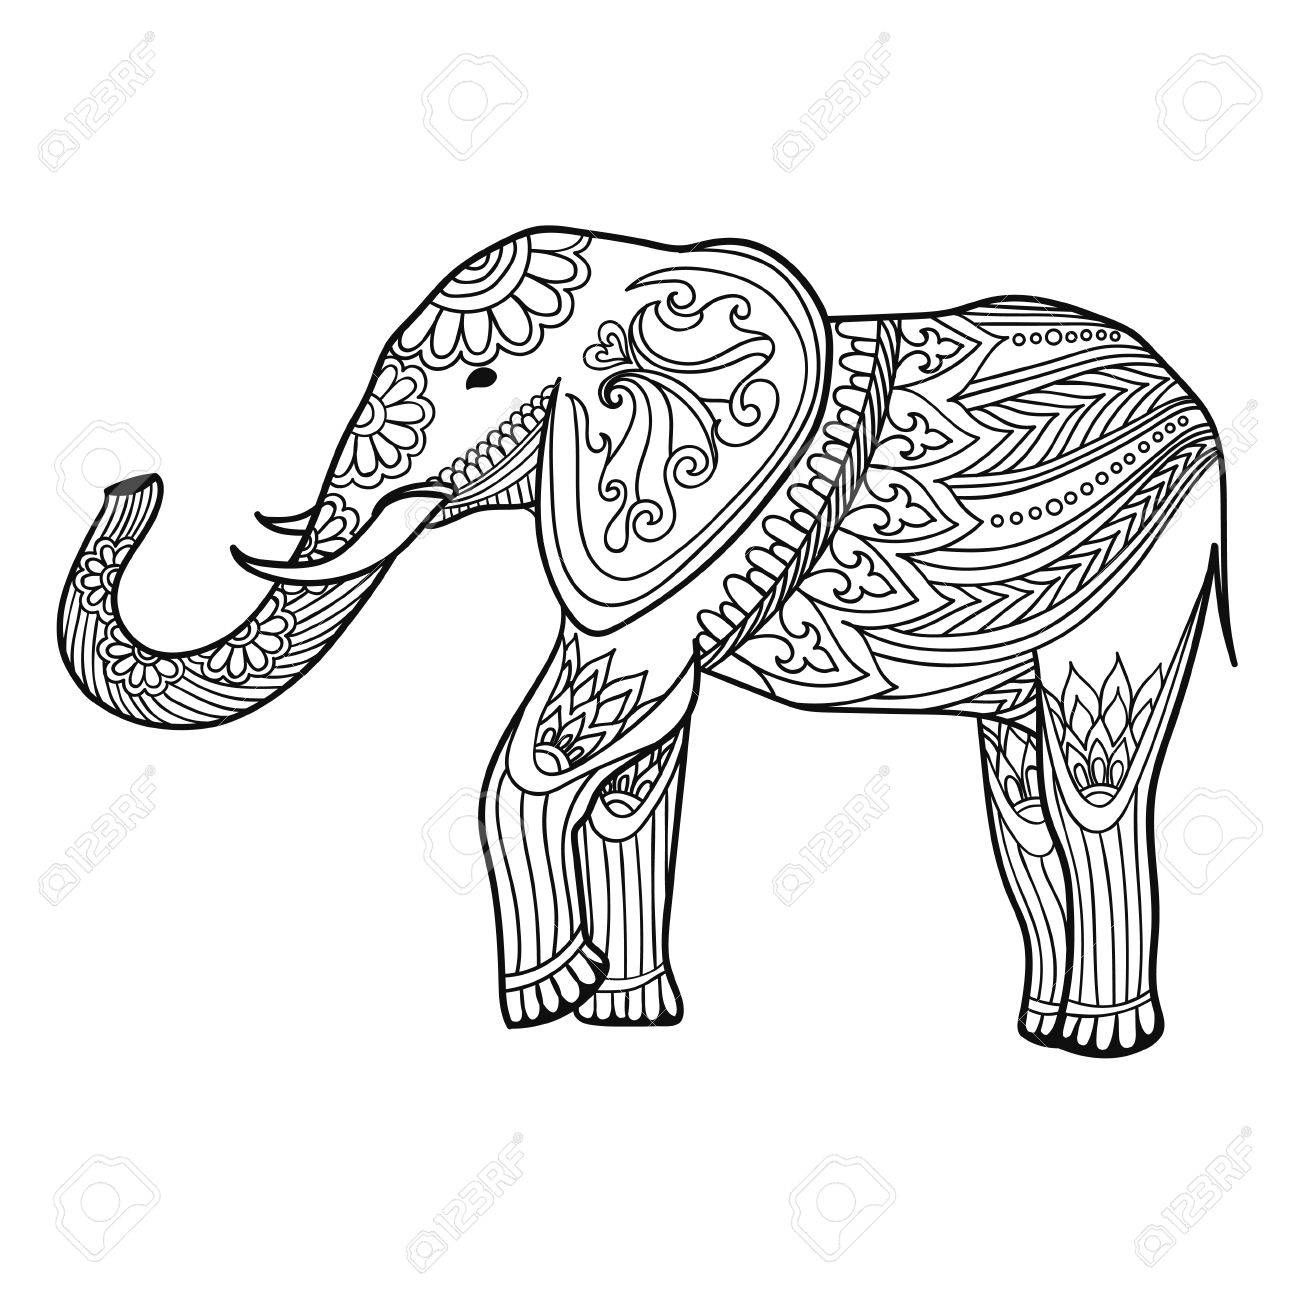 Indian Elephant In Traditional Asian Style. Ornate Linear Elephant ...